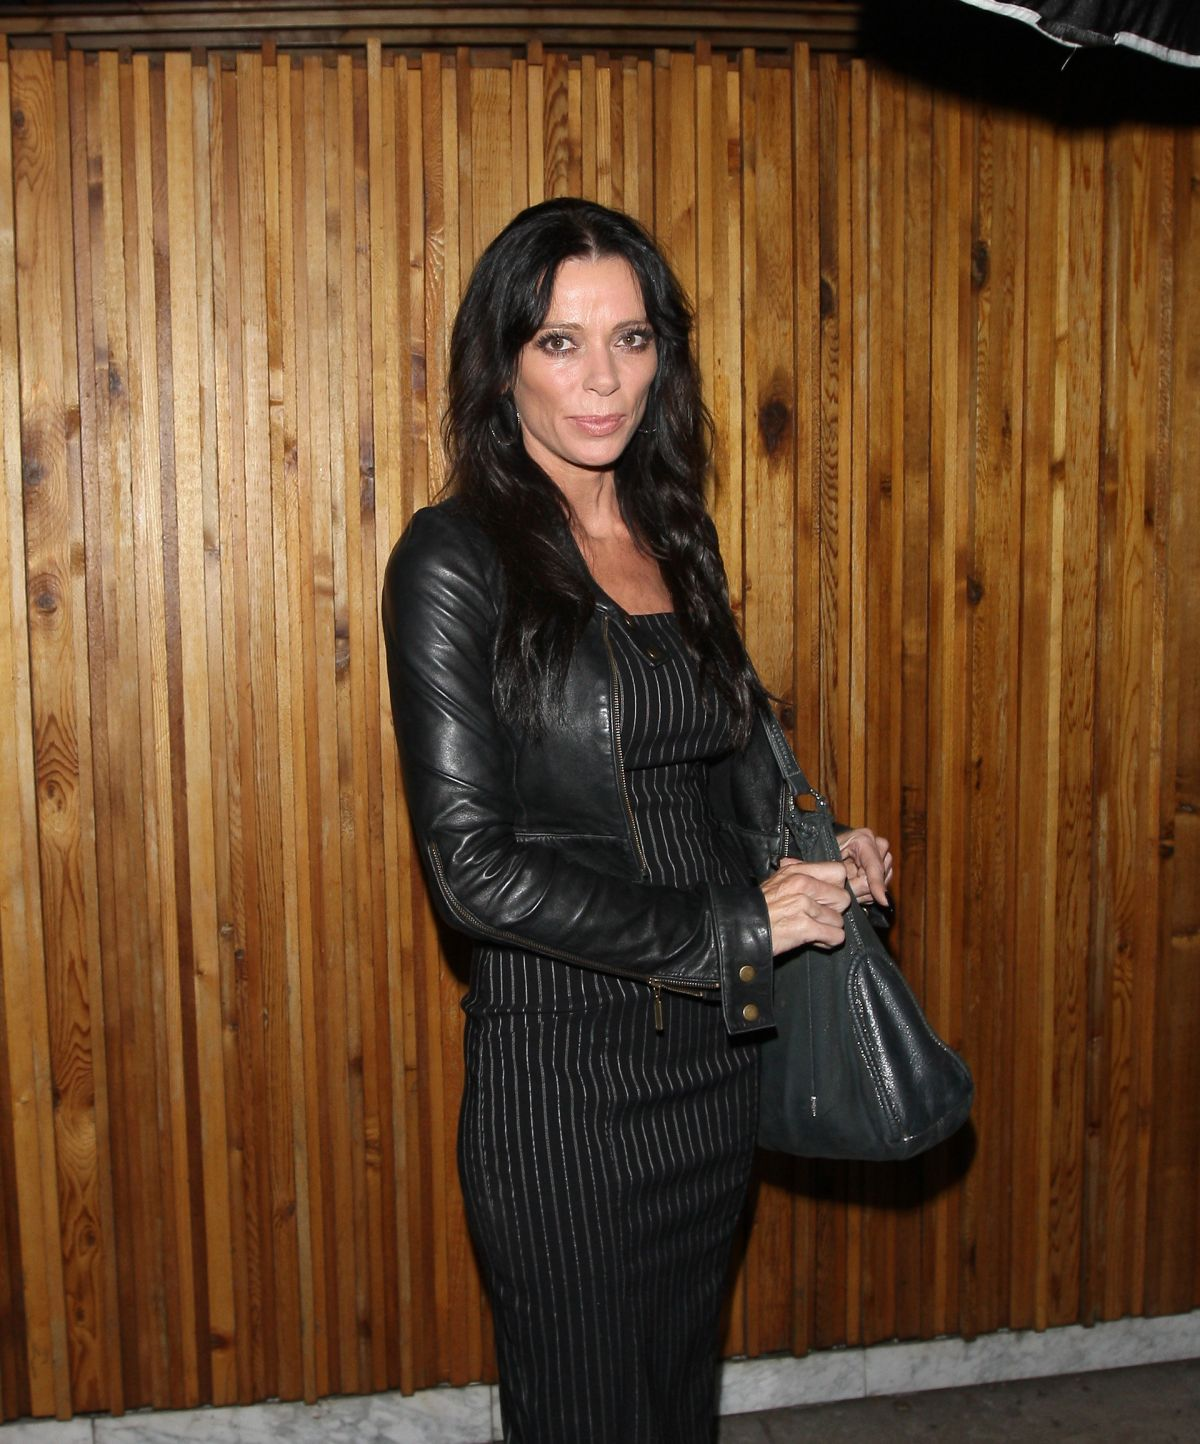 CARLTON GEBBIA at Nice Guy Club in West Hollywood 01/14/2016